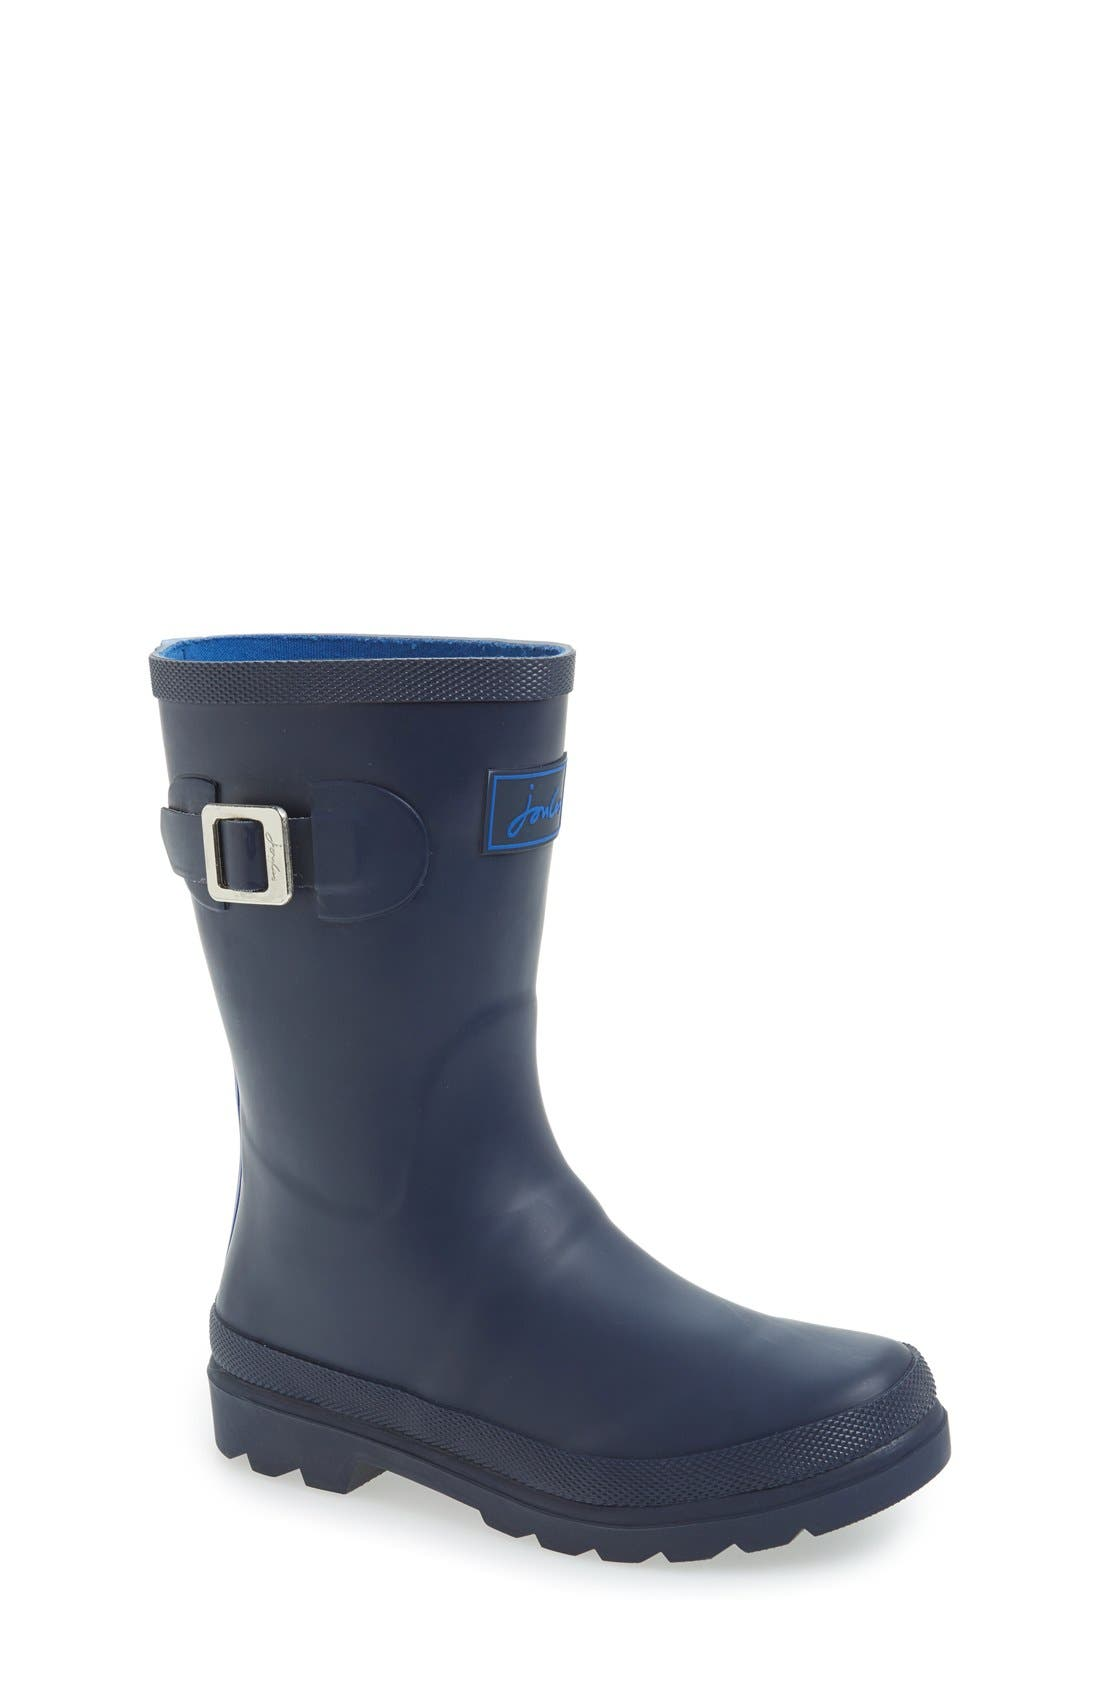 Joules 'Field Welly' Rain Boot (Walker, Toddler, Little Kid & Big Kid)